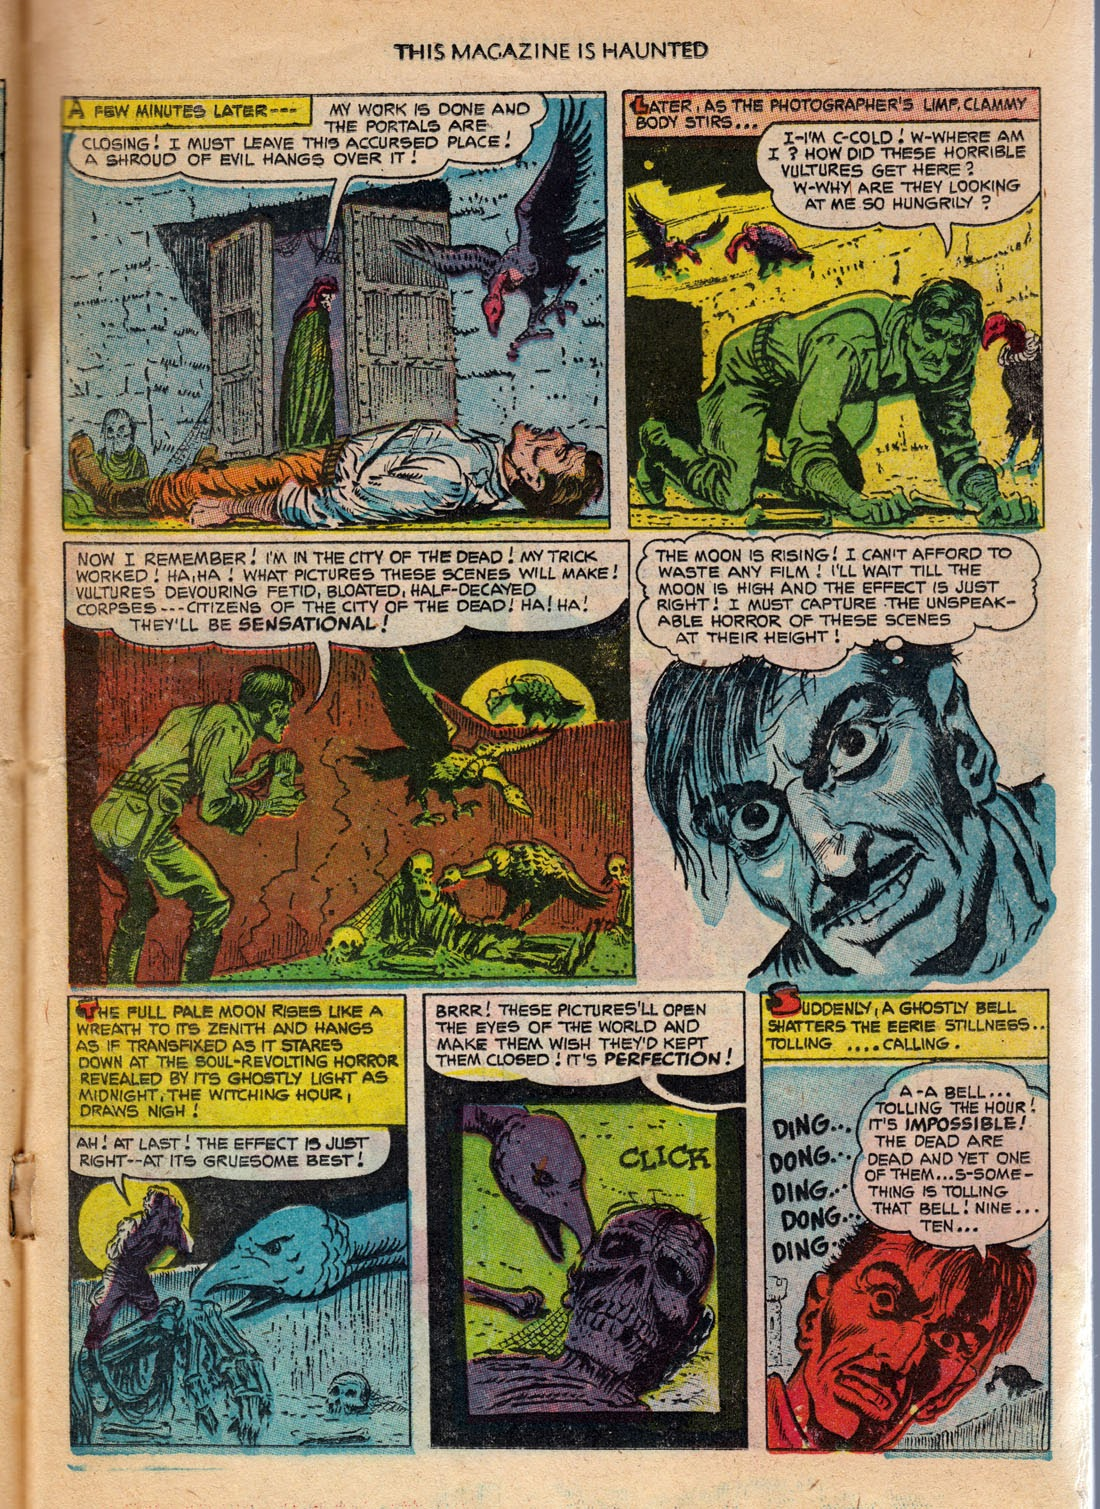 Read online This Magazine Is Haunted comic -  Issue #10 - 15